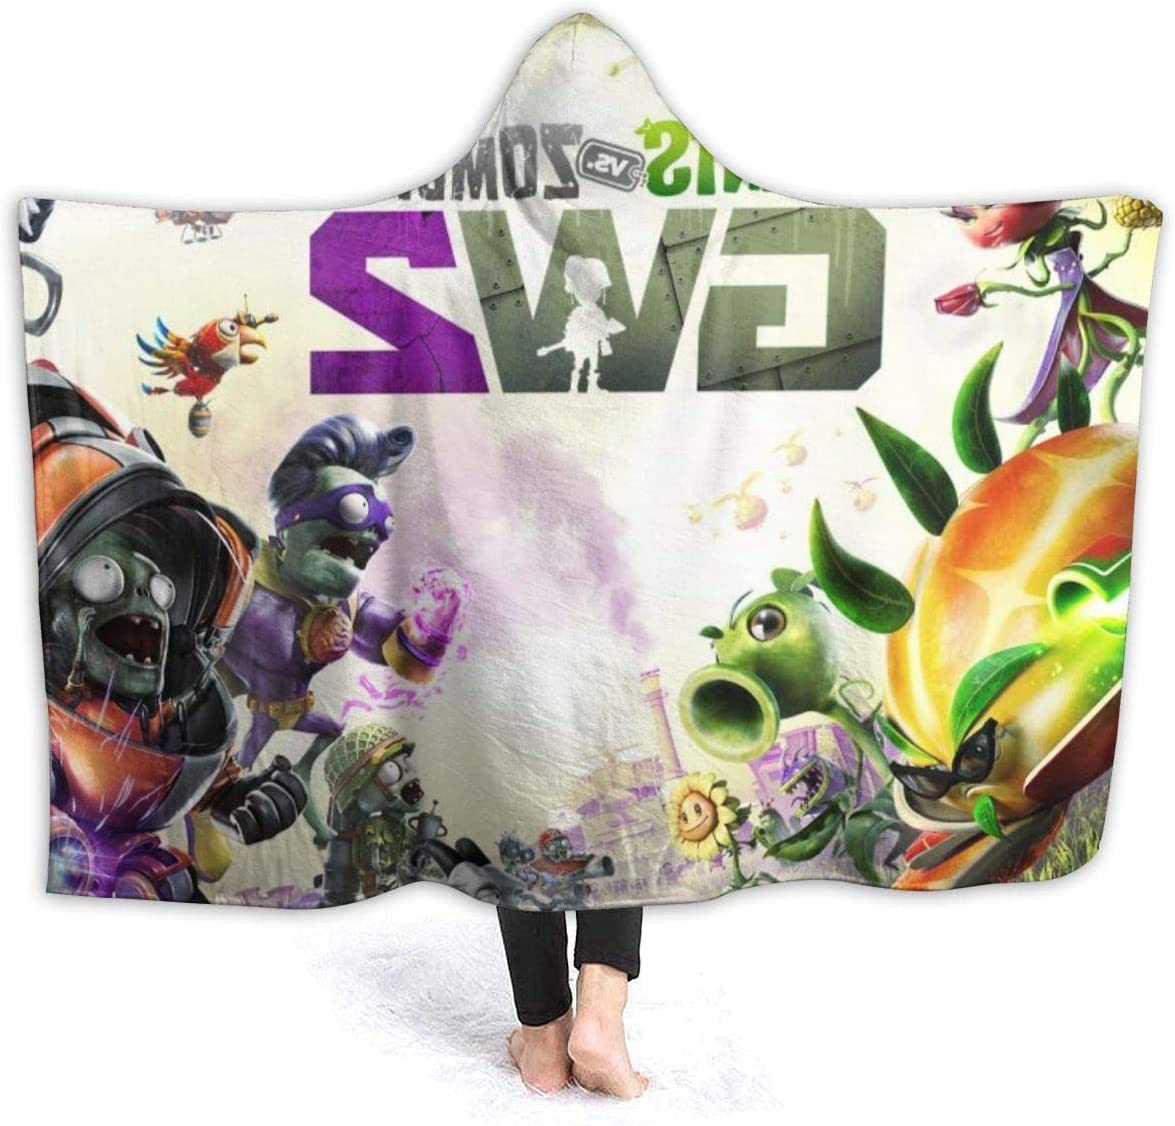 Winter Hooded Blankets for Kids Youth, Game PVZ Garden Warfare 2 Fan Art Wearable Blankets for New Year, Bed, Park, Anti-Dirty Soft Throw Blanket